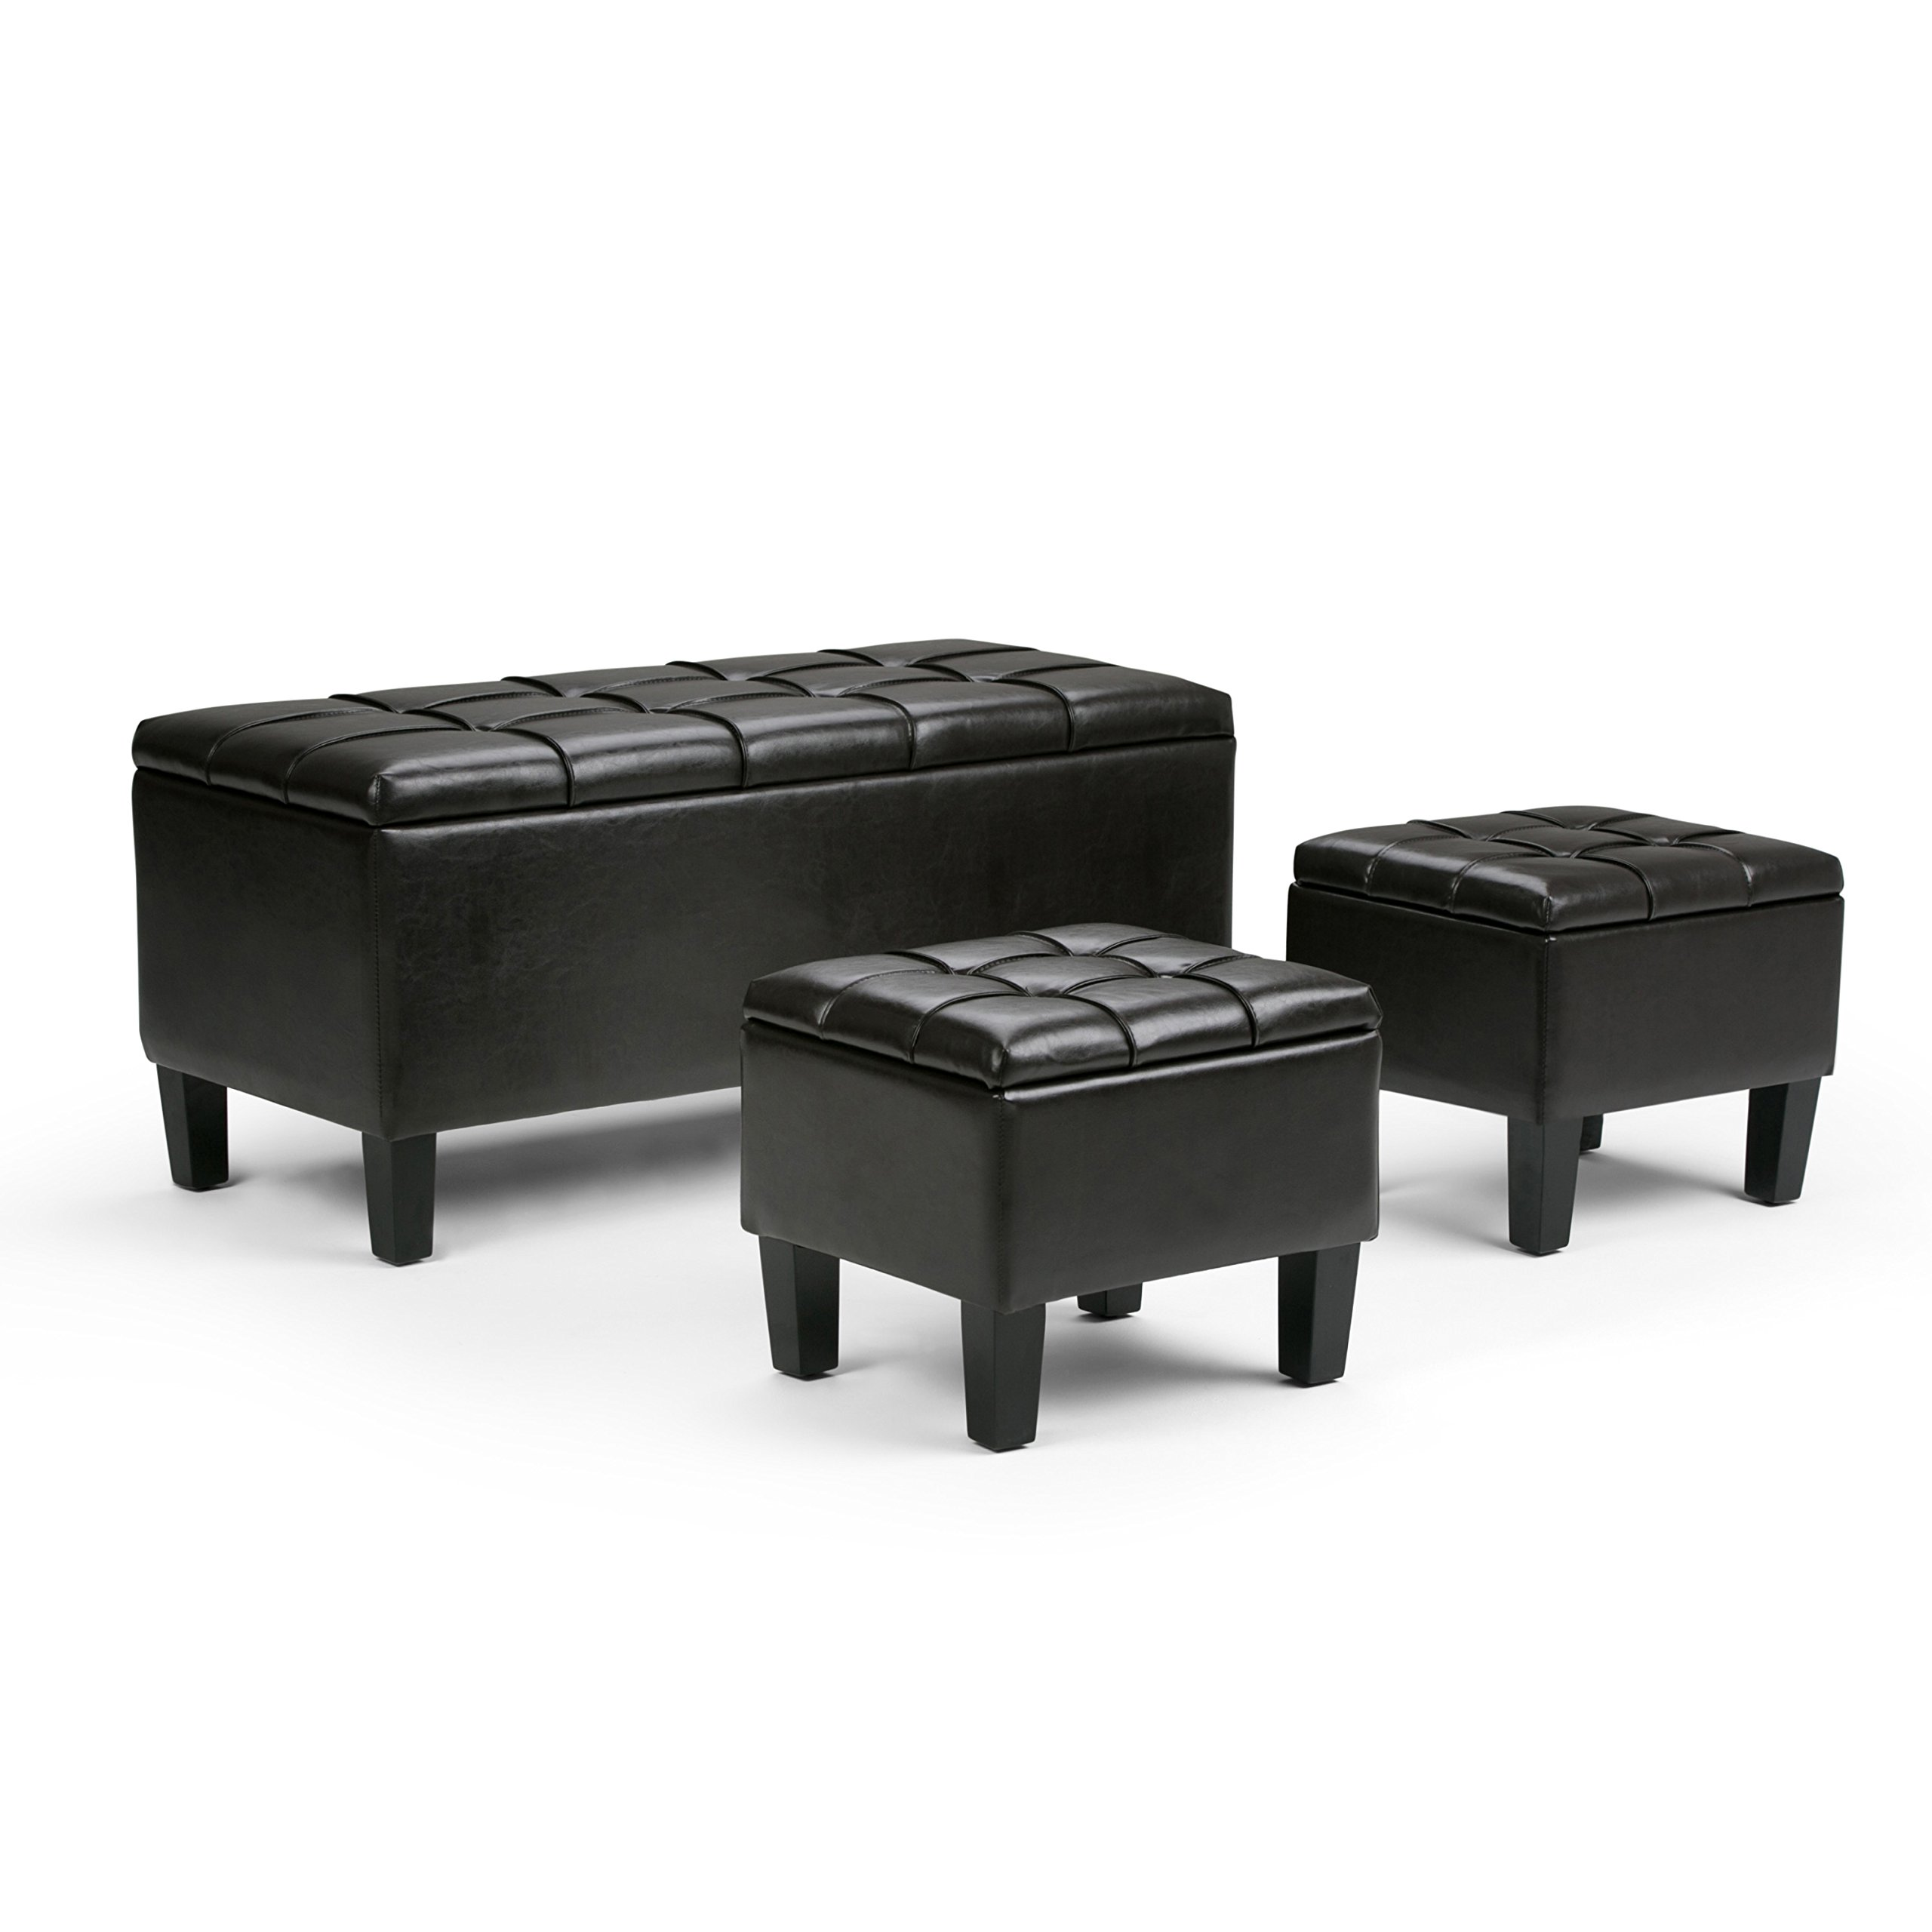 Simpli Home 3AXC-OTT238 Dover 44 inch Wide Contemporary Rectangle 3 Pc Storage Ottoman in Tanners Brown Faux Leather by Simpli Home